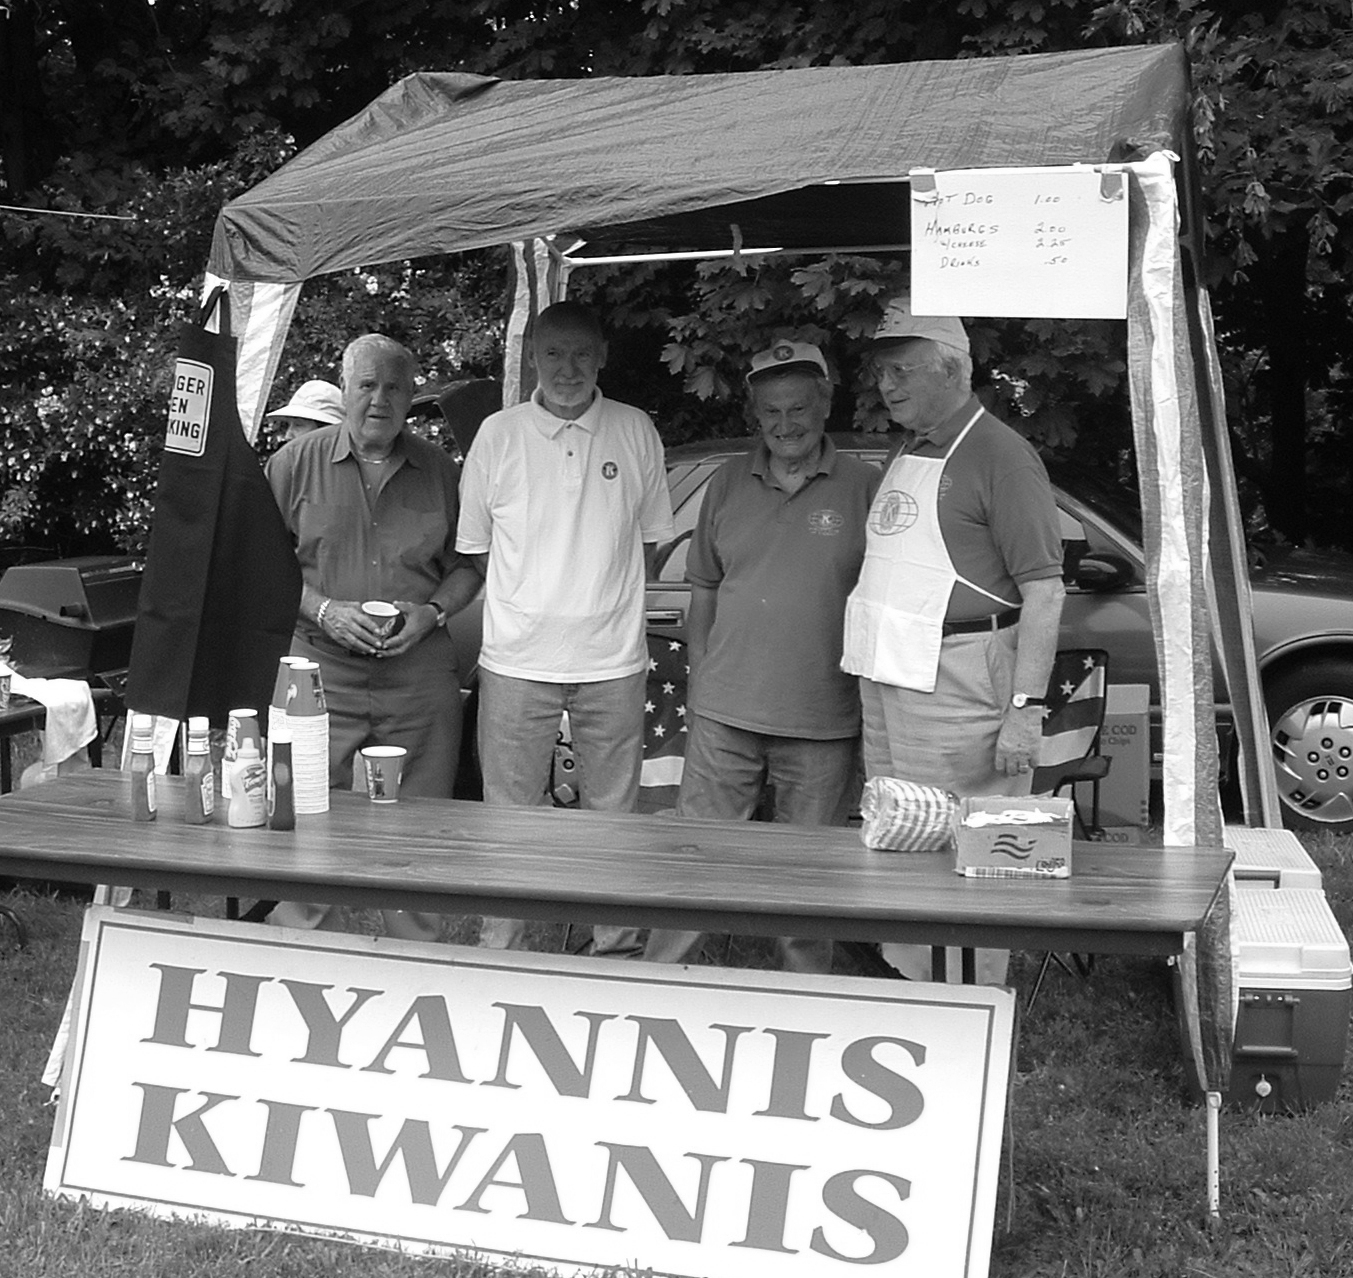 Bill Finkel, Jim Salts, Ray DuBois and Gene Burman at our booth at the July 4th Barnstable Village Annual Picnic in 2006